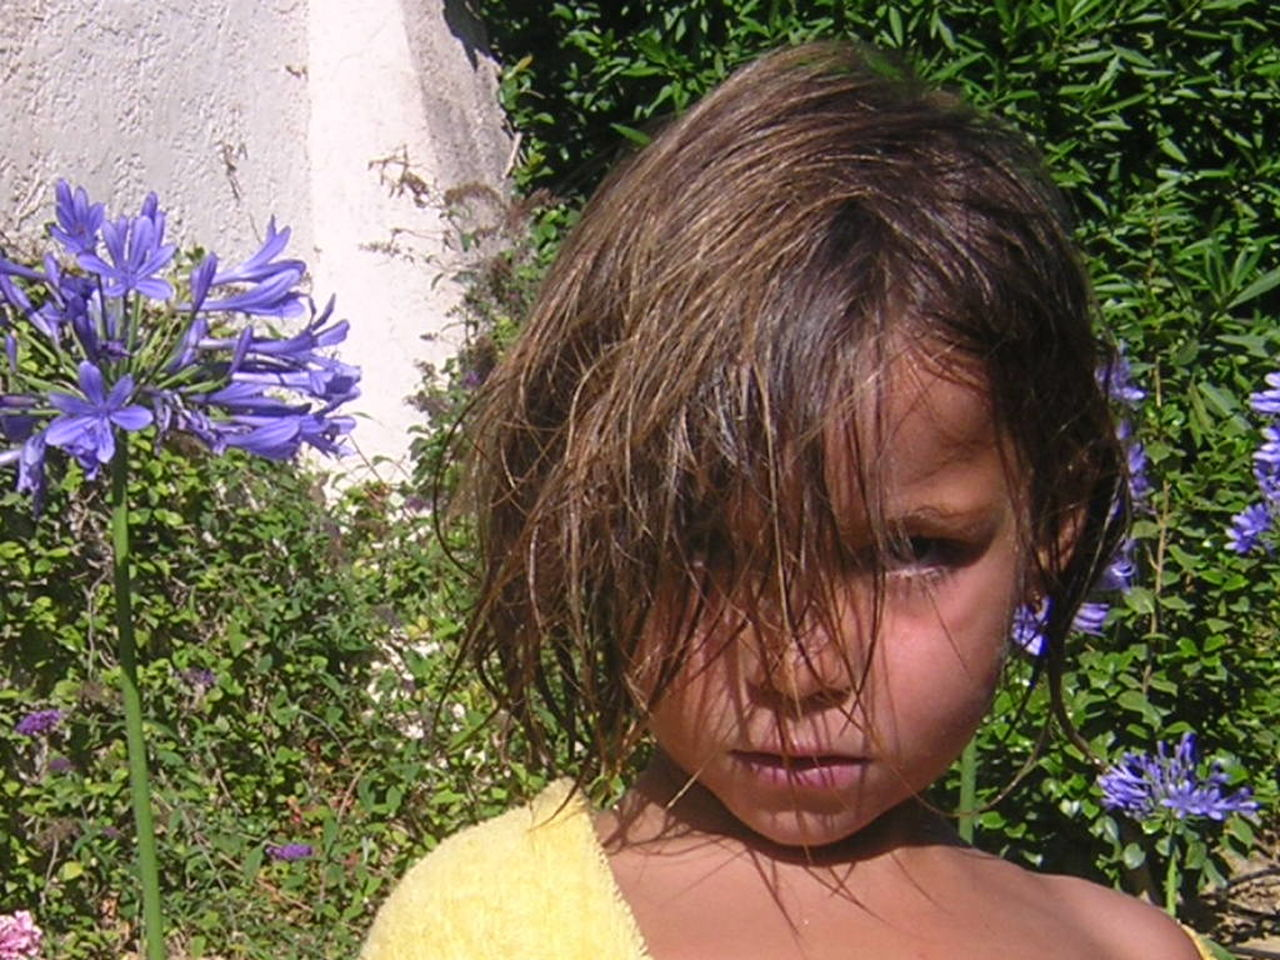 flower, childhood, one person, outdoors, headshot, real people, day, grass, close-up, children only, nature, people